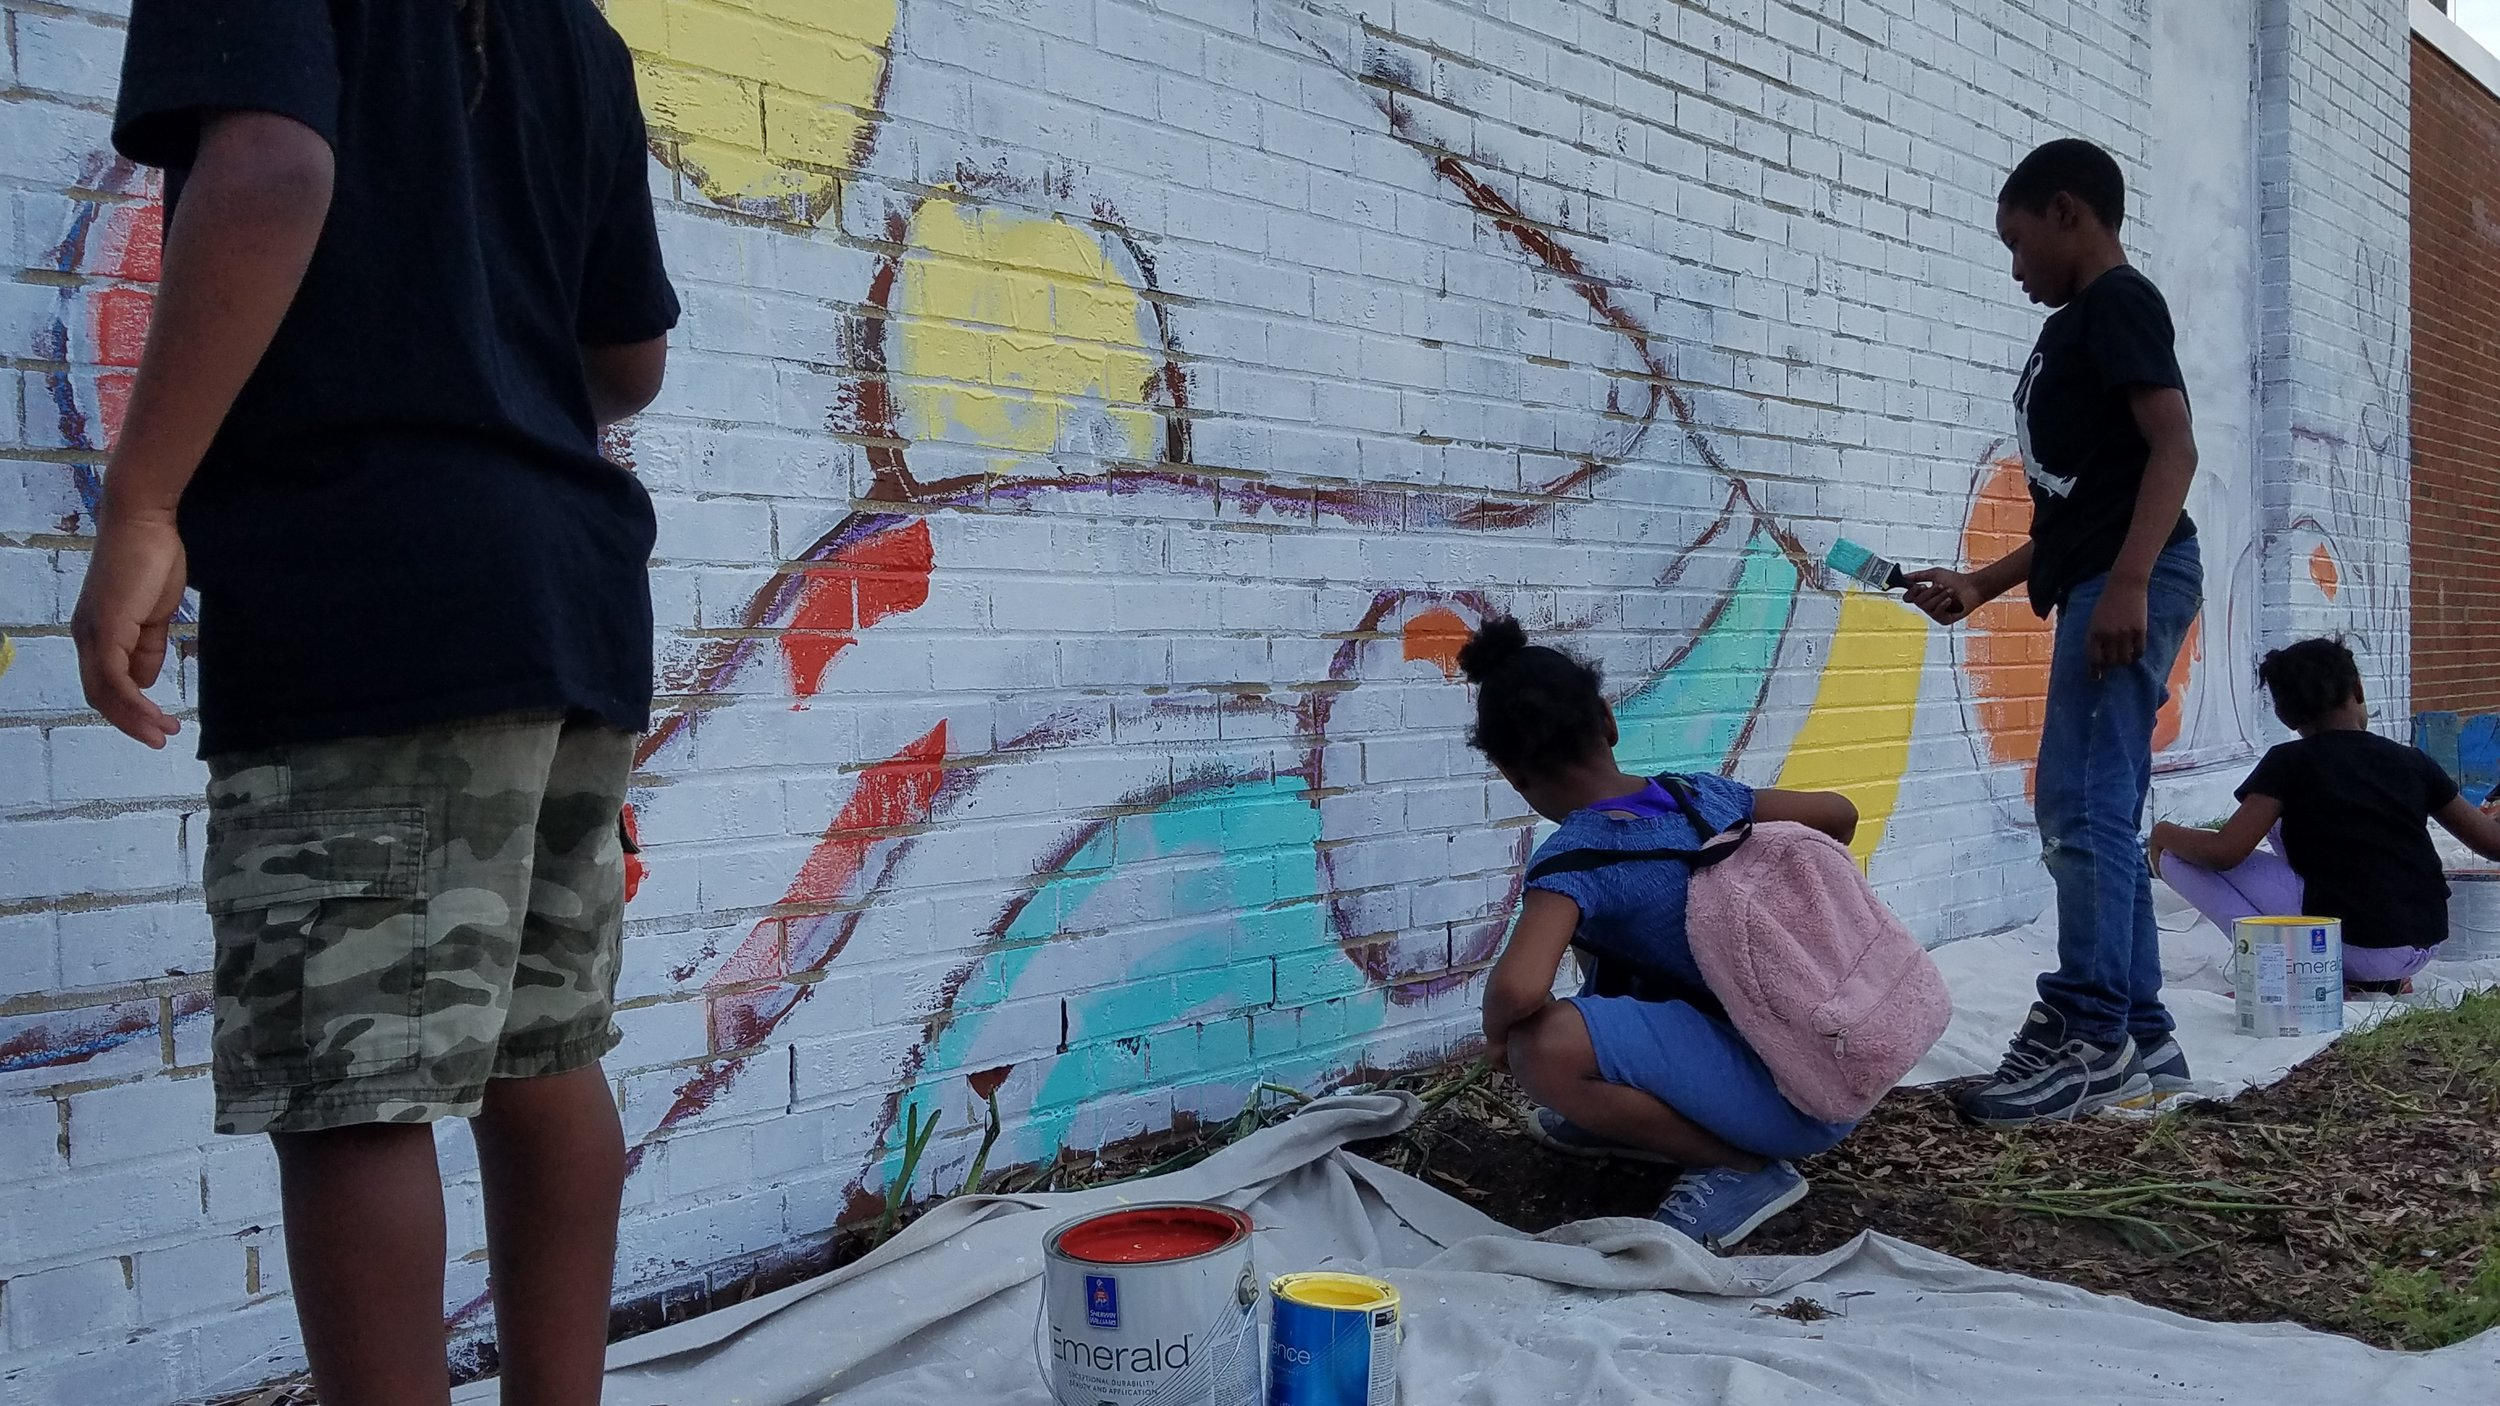 Members helped paint the mural during the Love Your Block celebration.